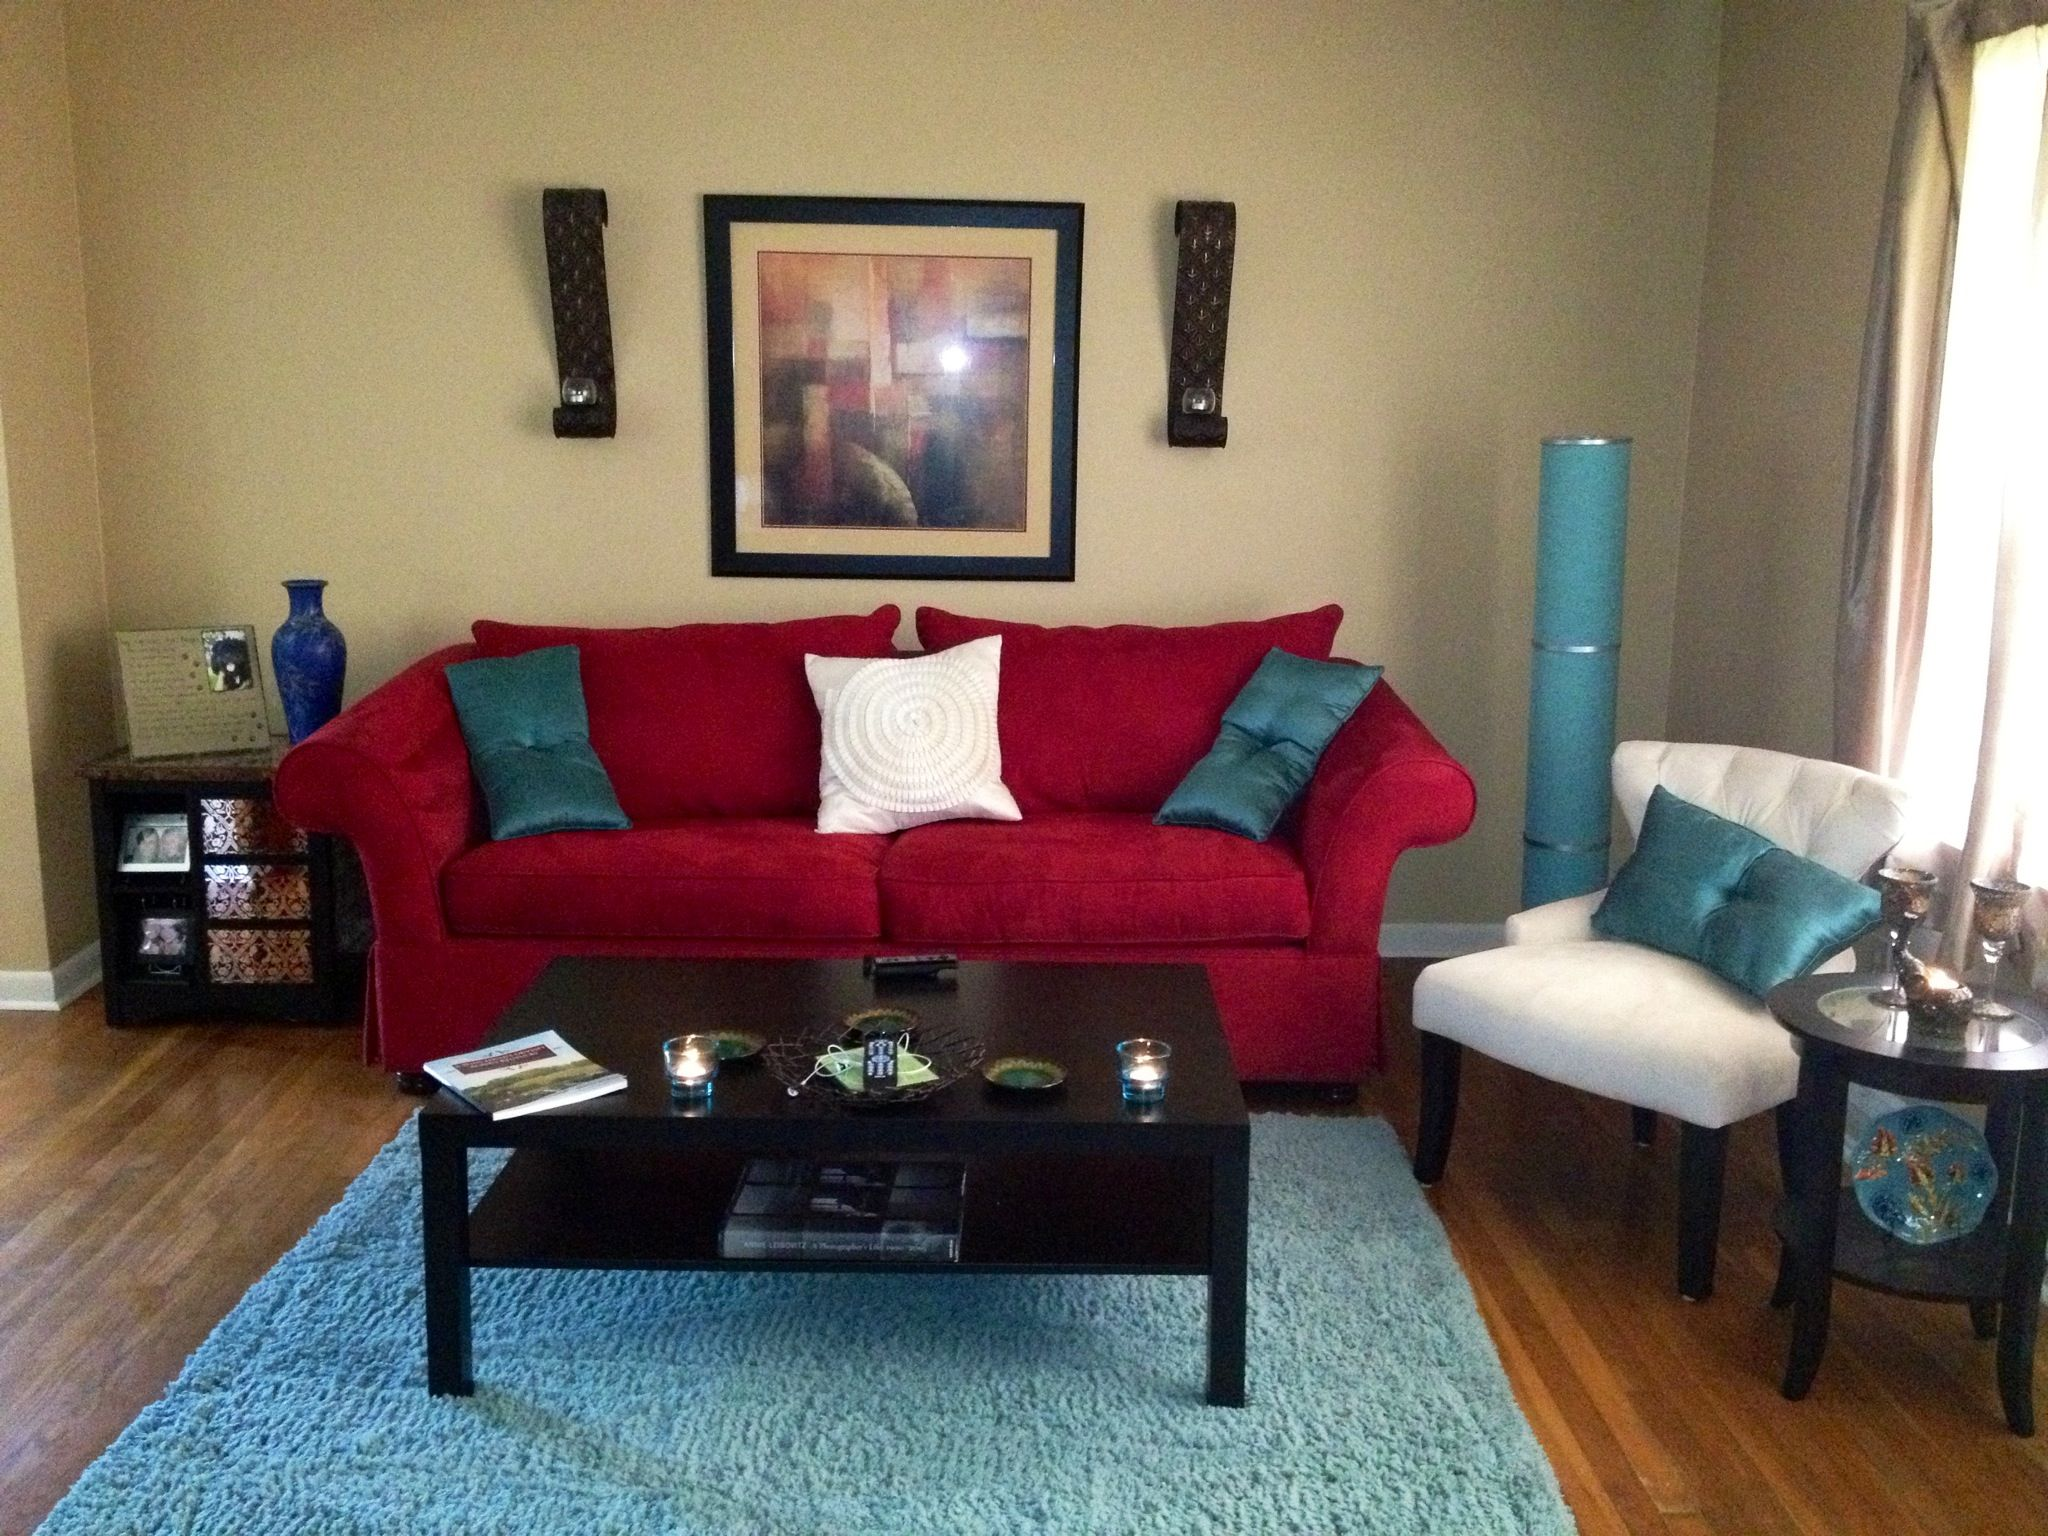 Living Room Decorating Ideas Red Sofa living room // red, black, cream, gray, and tealcould be cute